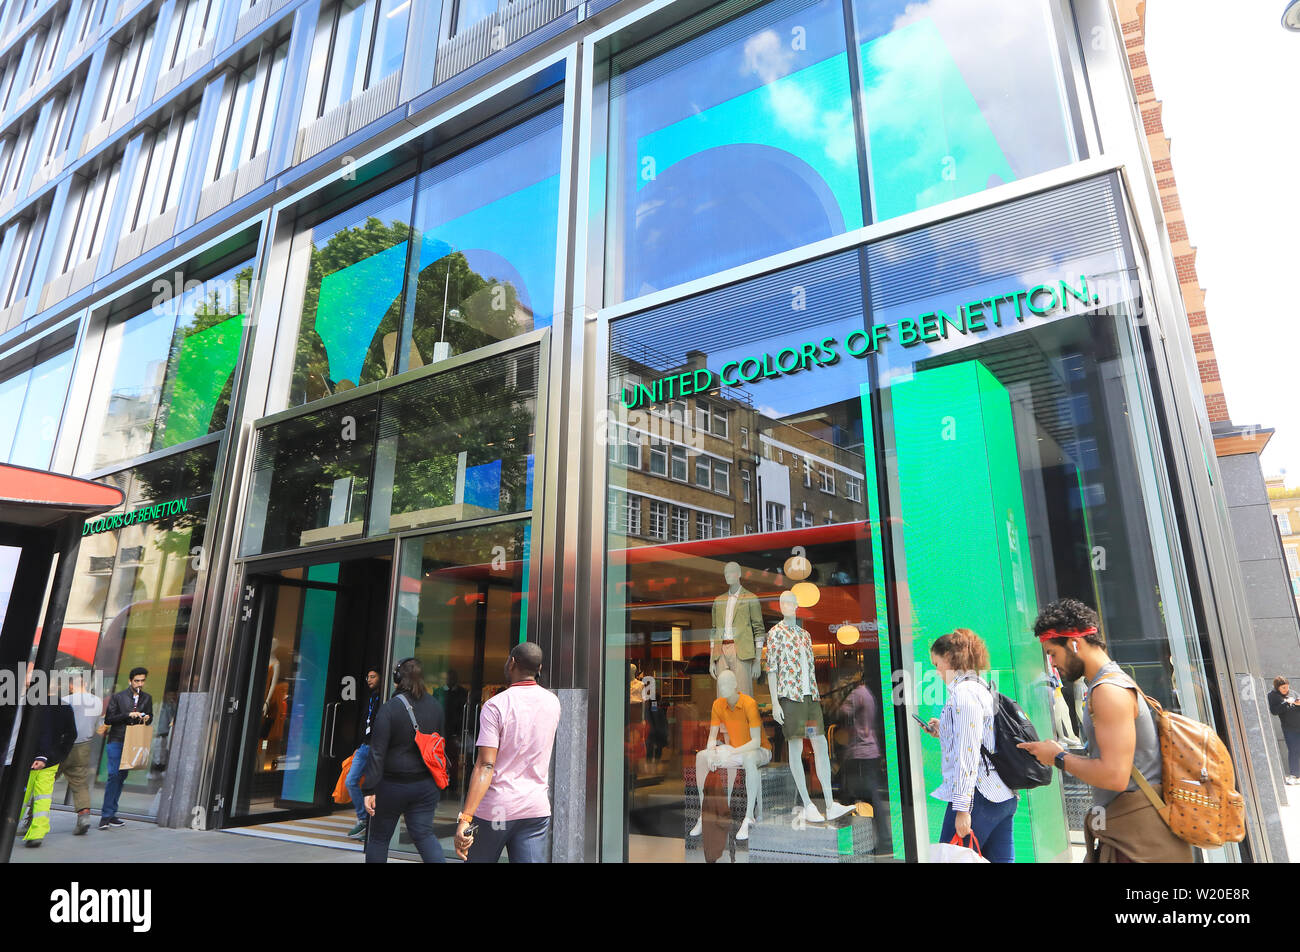 Benetton clothes shop on Oxford Street, on Oxford Street in London, UK - Stock Image